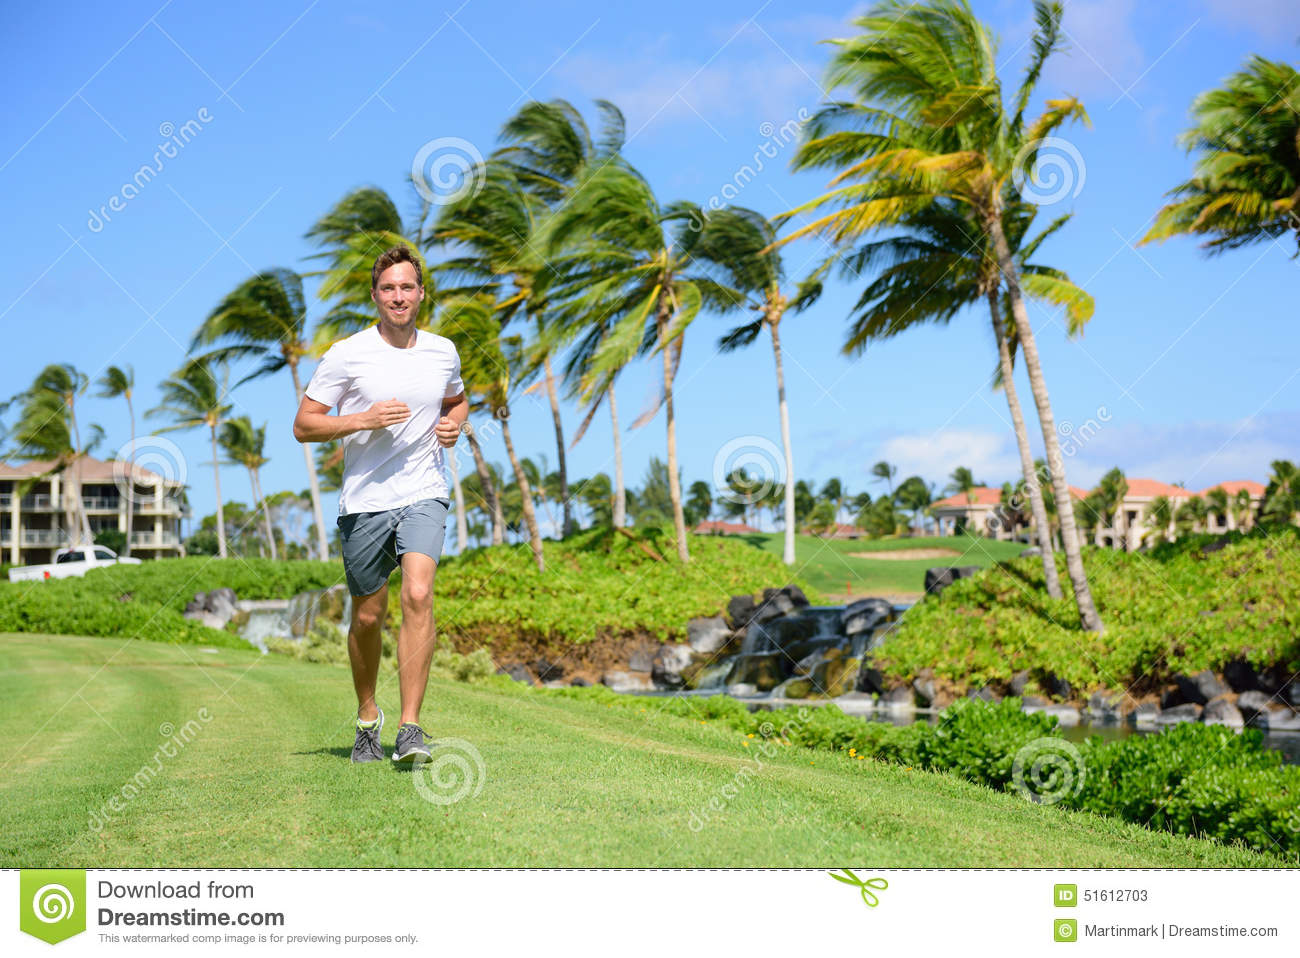 Outdoor exercise man running on grass in city park